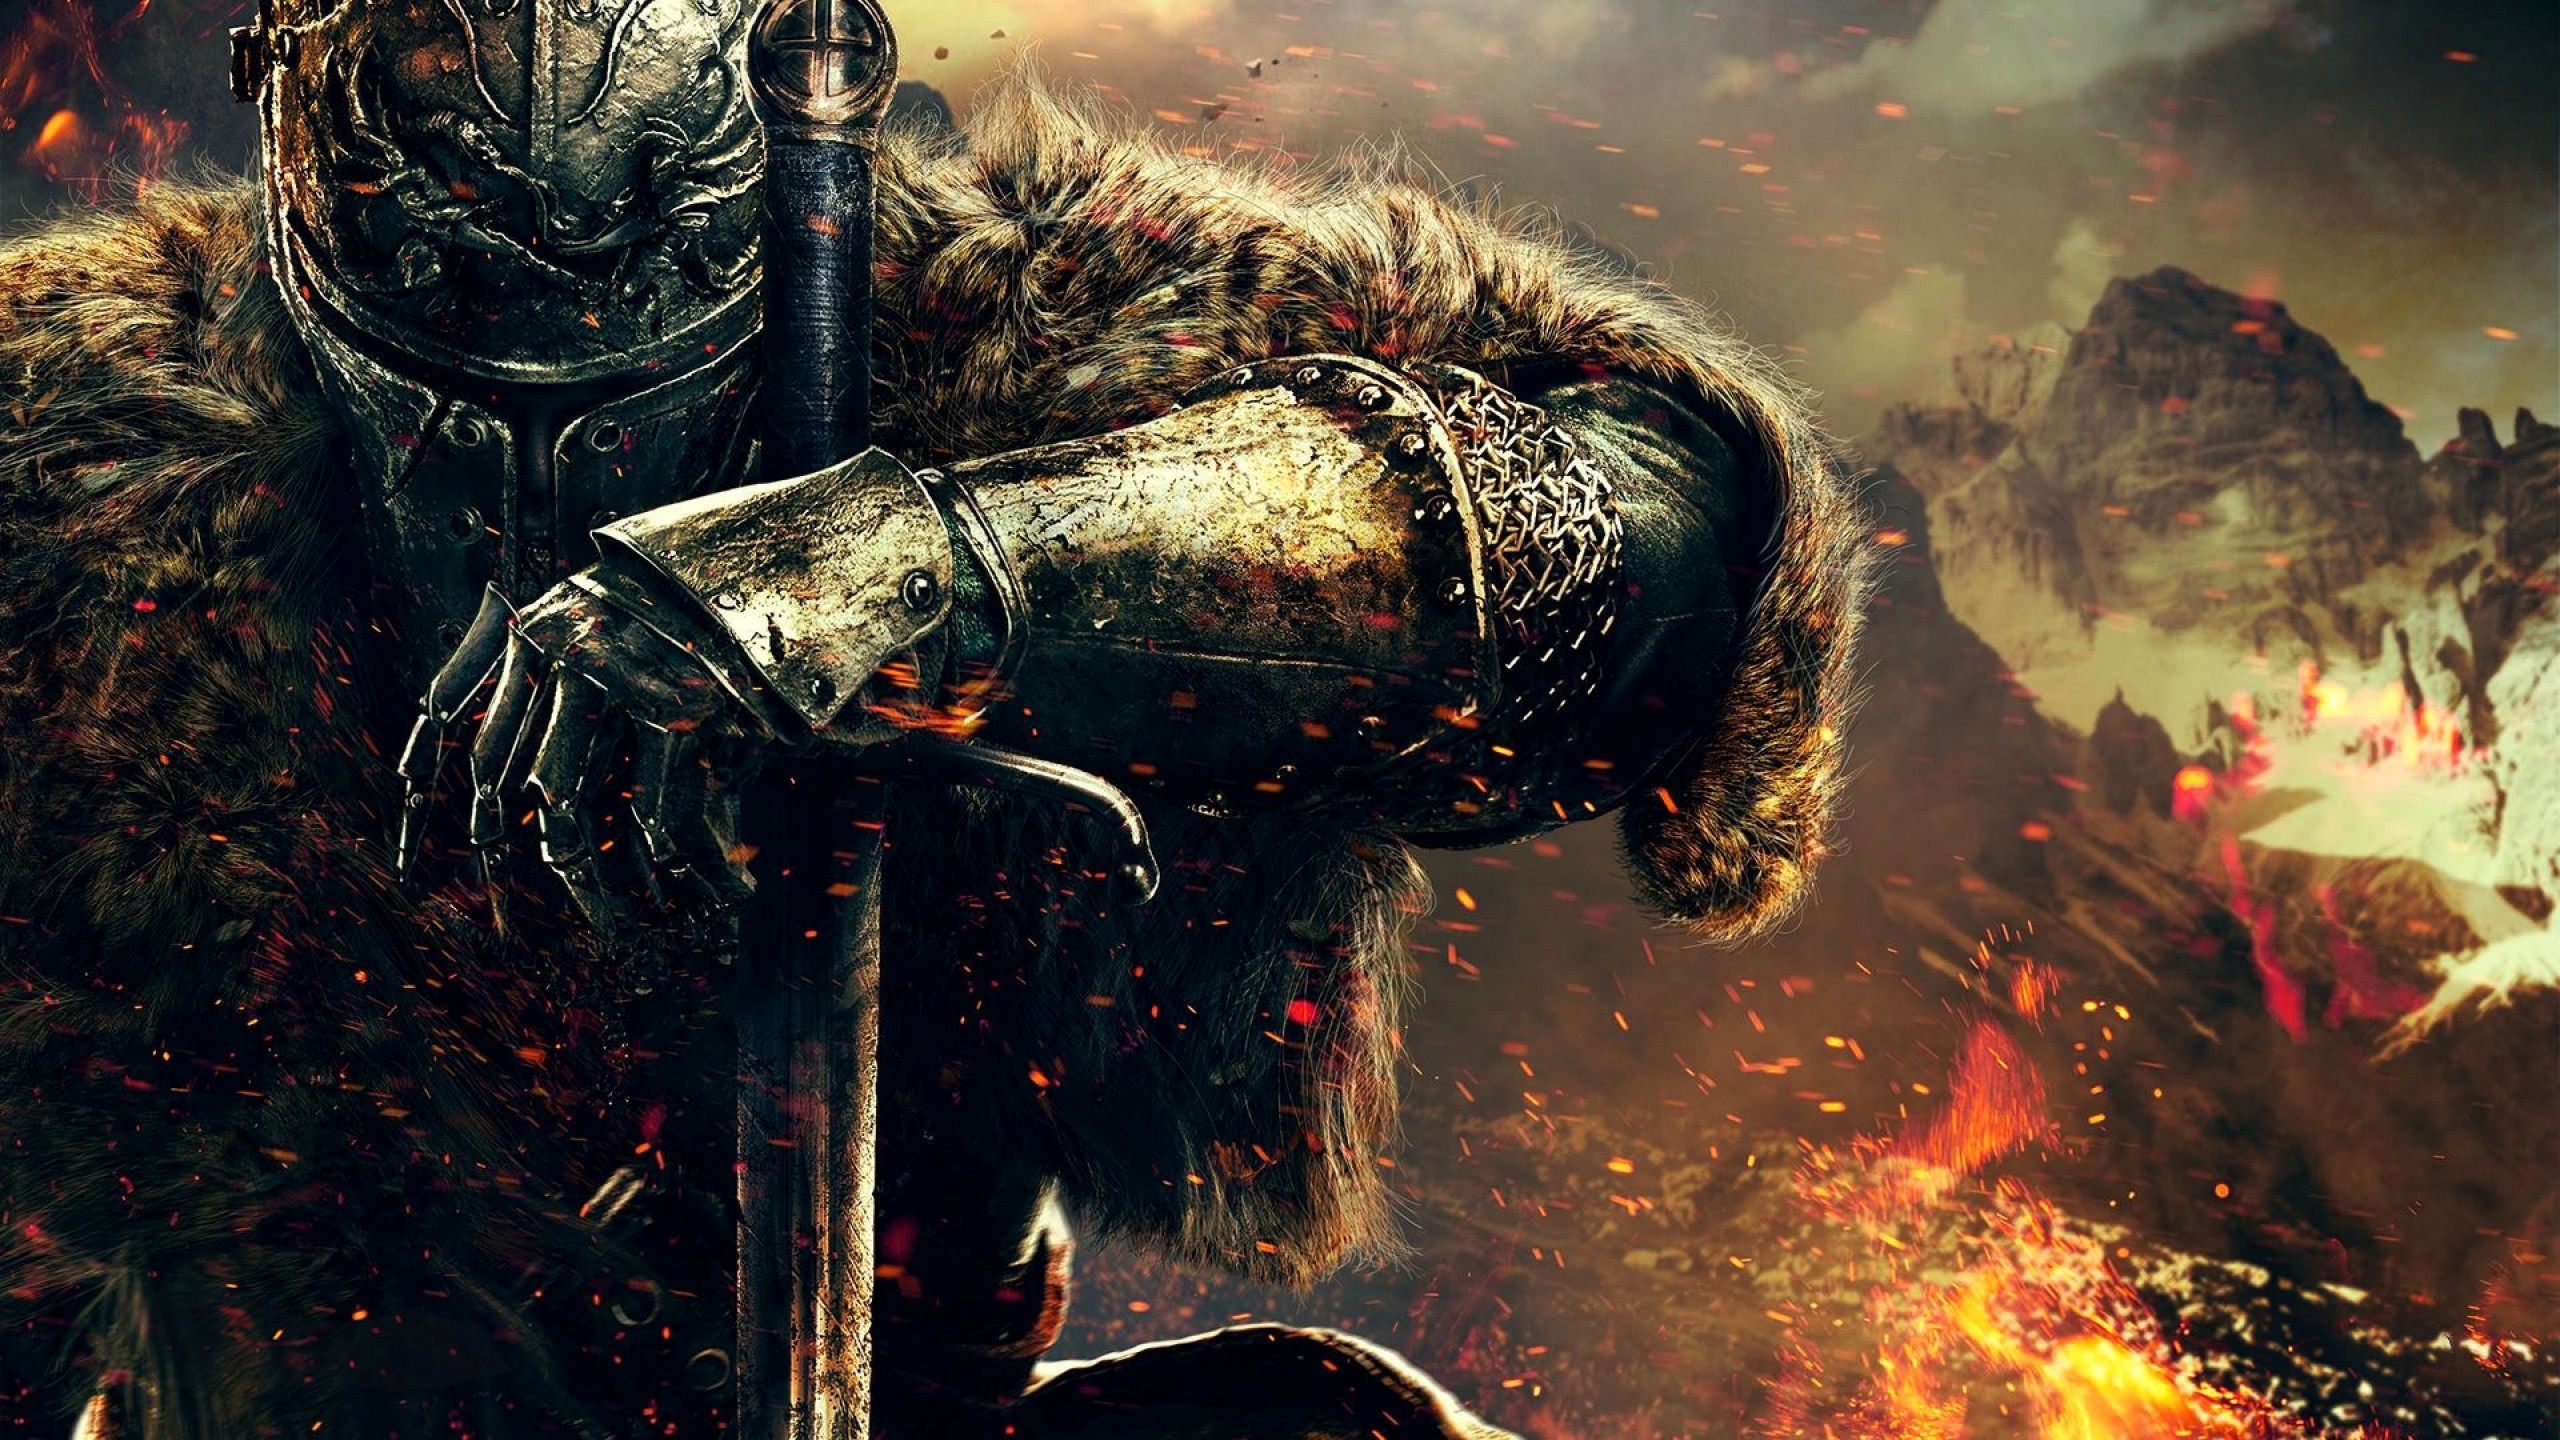 2560x1440 ... Games Wallpaper  | HD Wallpapers Backgrounds of Your Choice